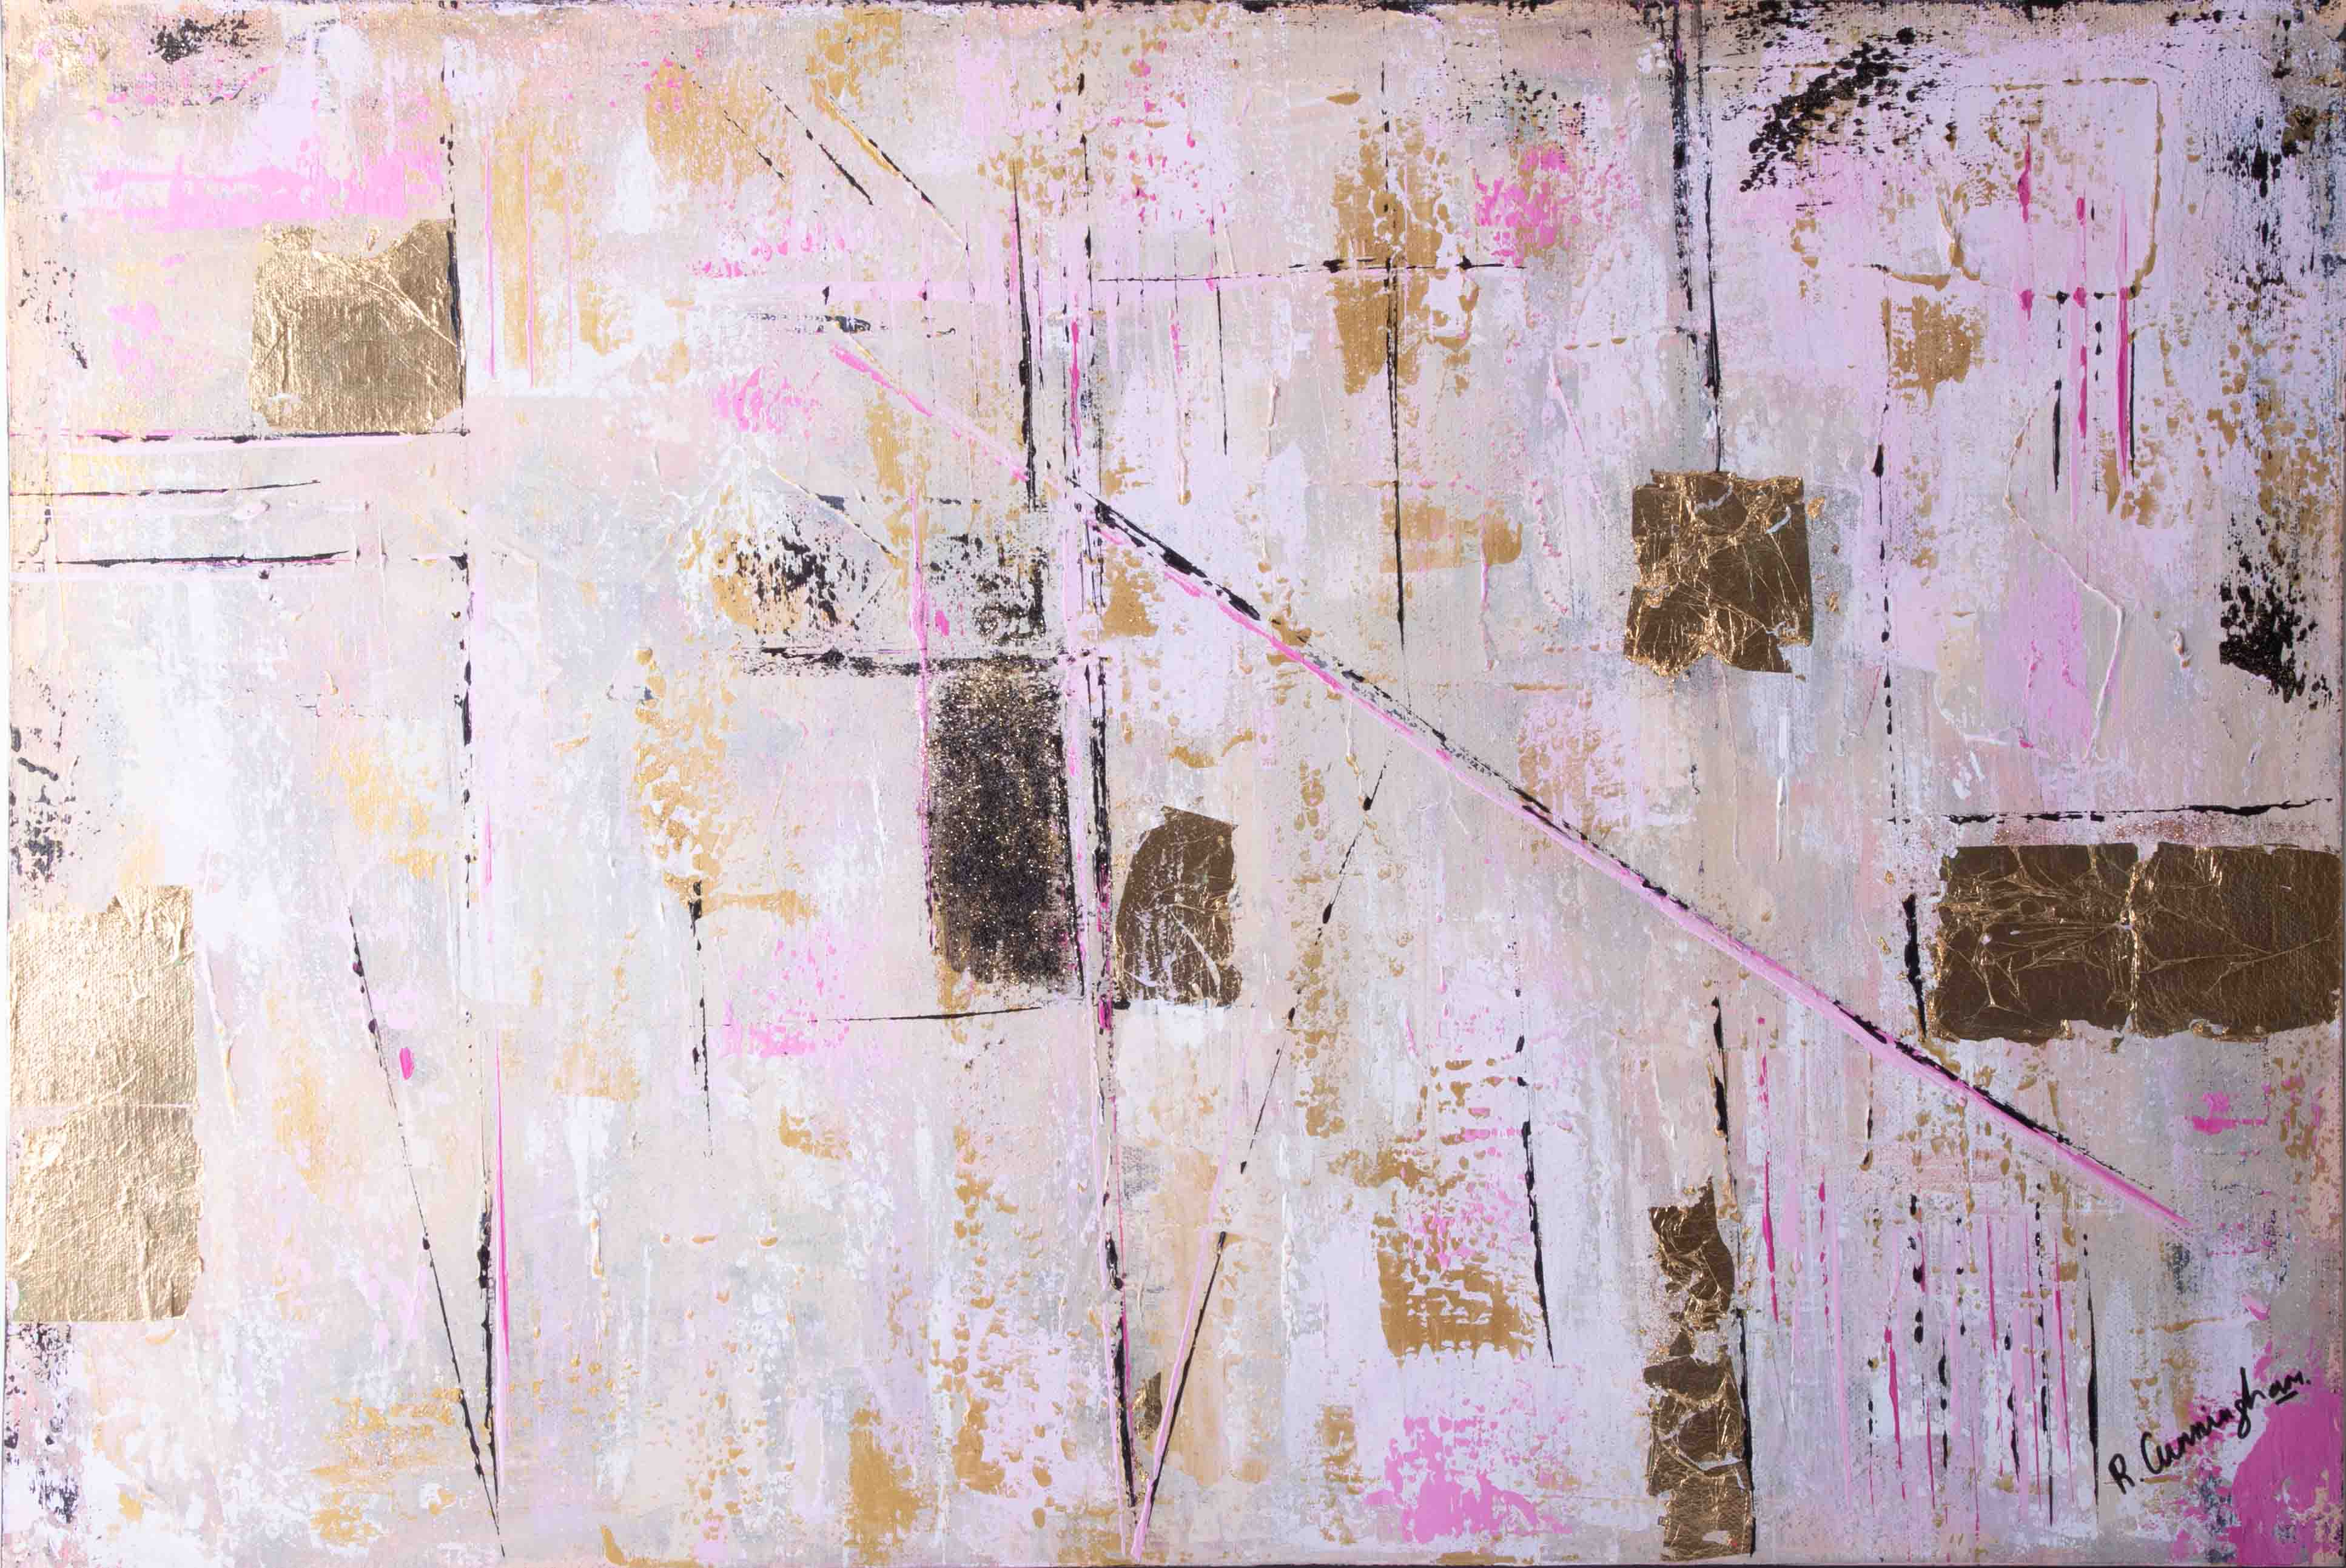 Rosie Cunningham, 'Urban Glimmer' signed oil on canvas, 51cm x 77cm, unframed. Consigned from the